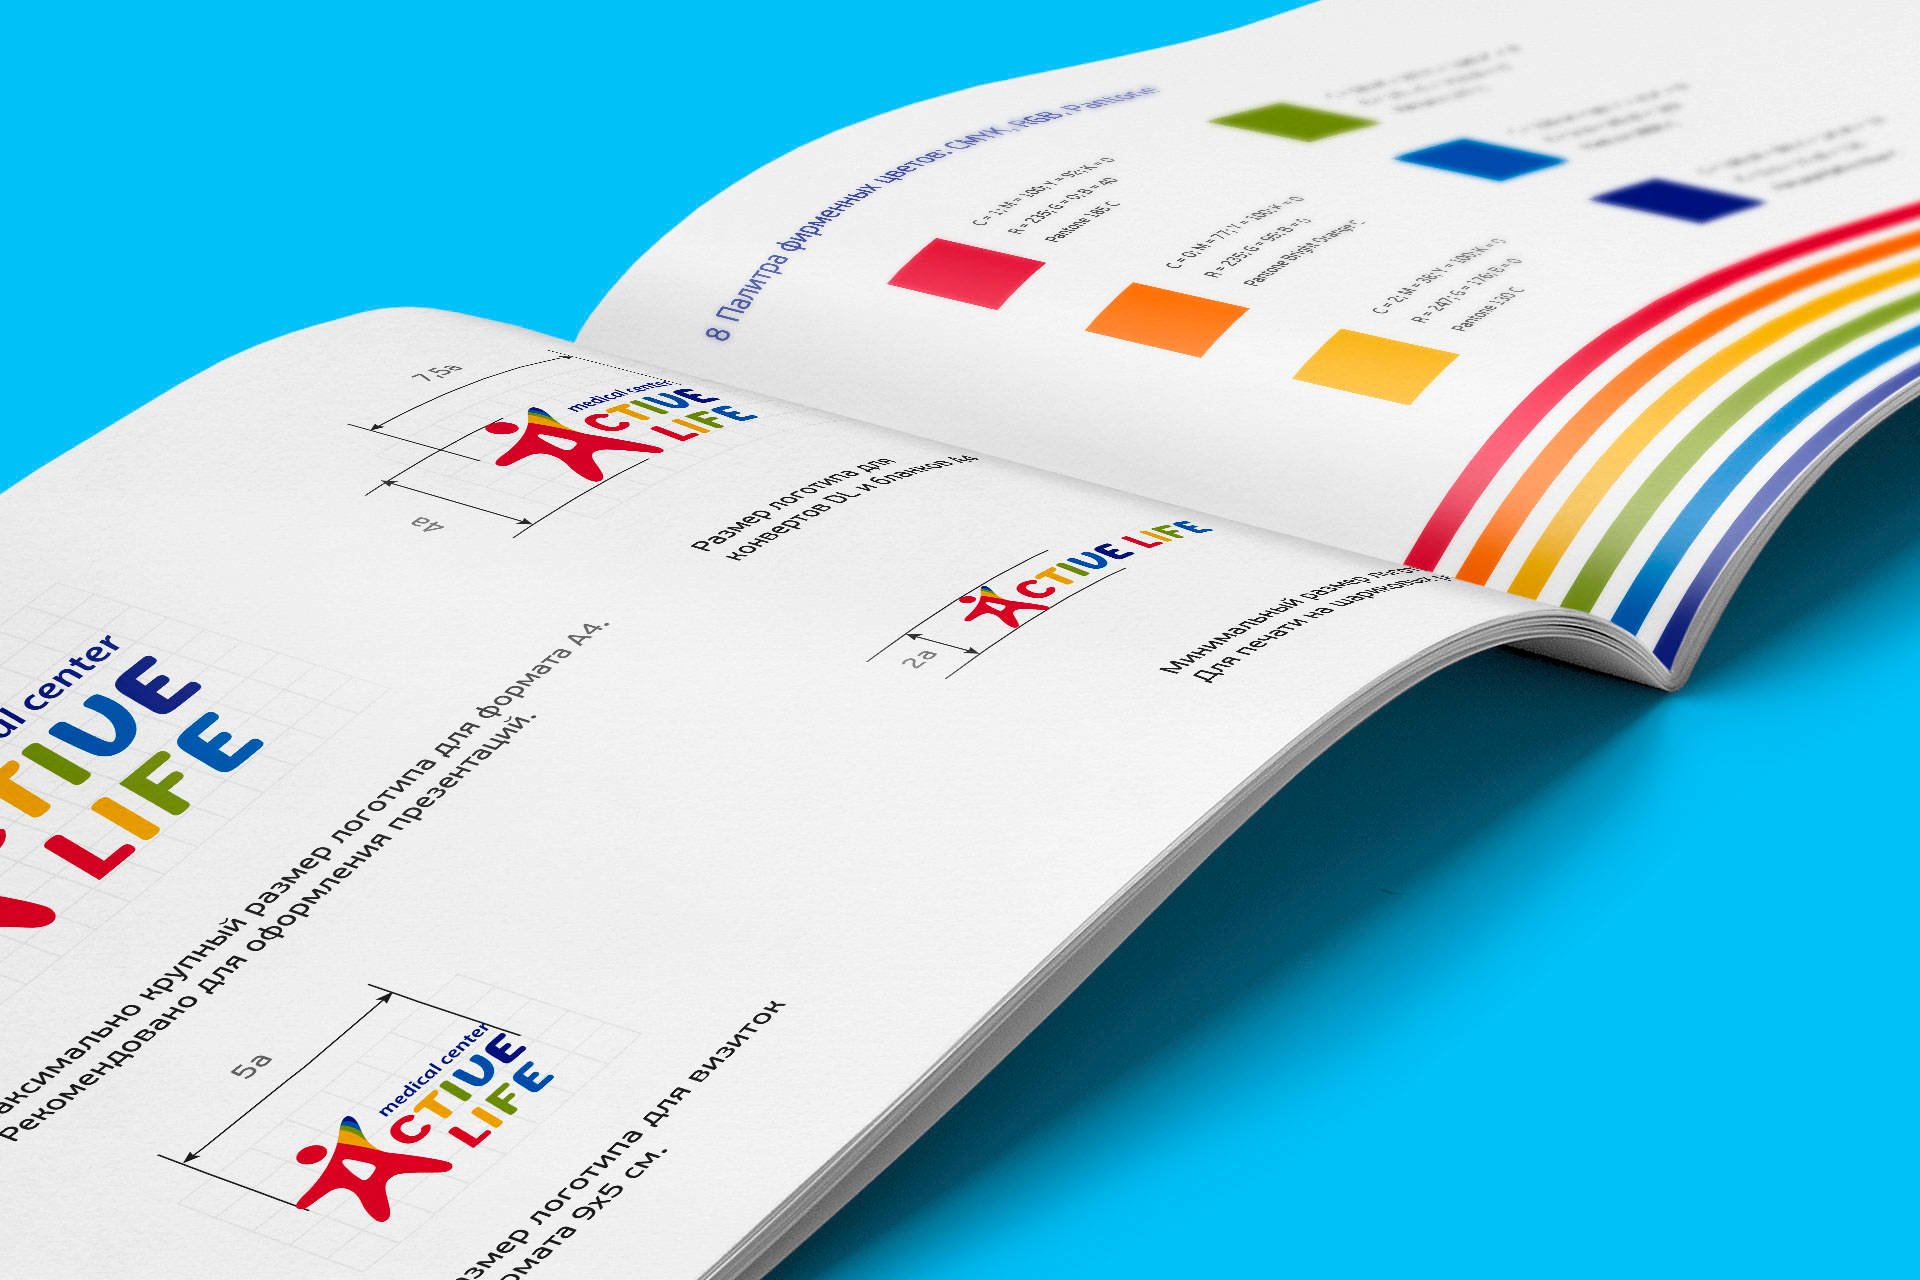 Дизайн of the brand book for the medical center, Brand book design for medical center